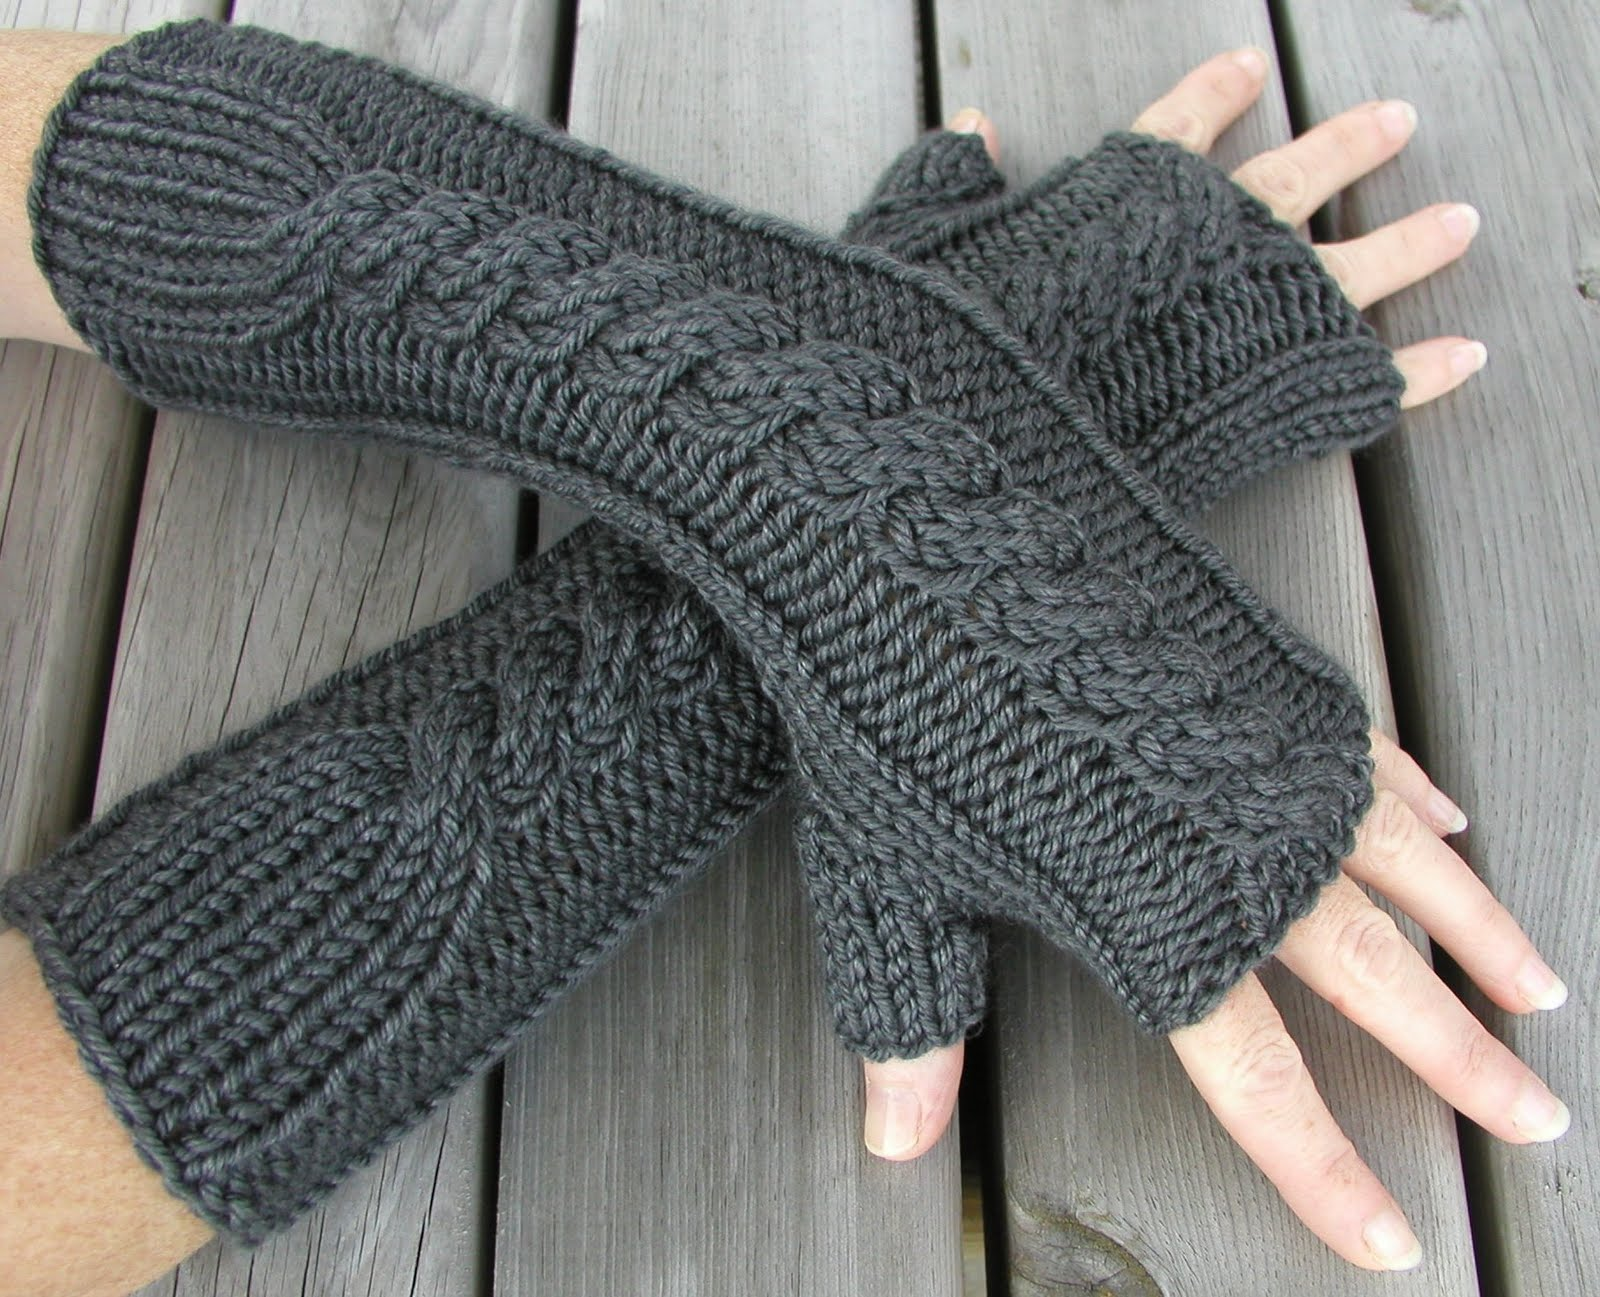 Knitting Patterns Free Fingerless Mittens : How to Knit Fingerless Gloves - YouTube